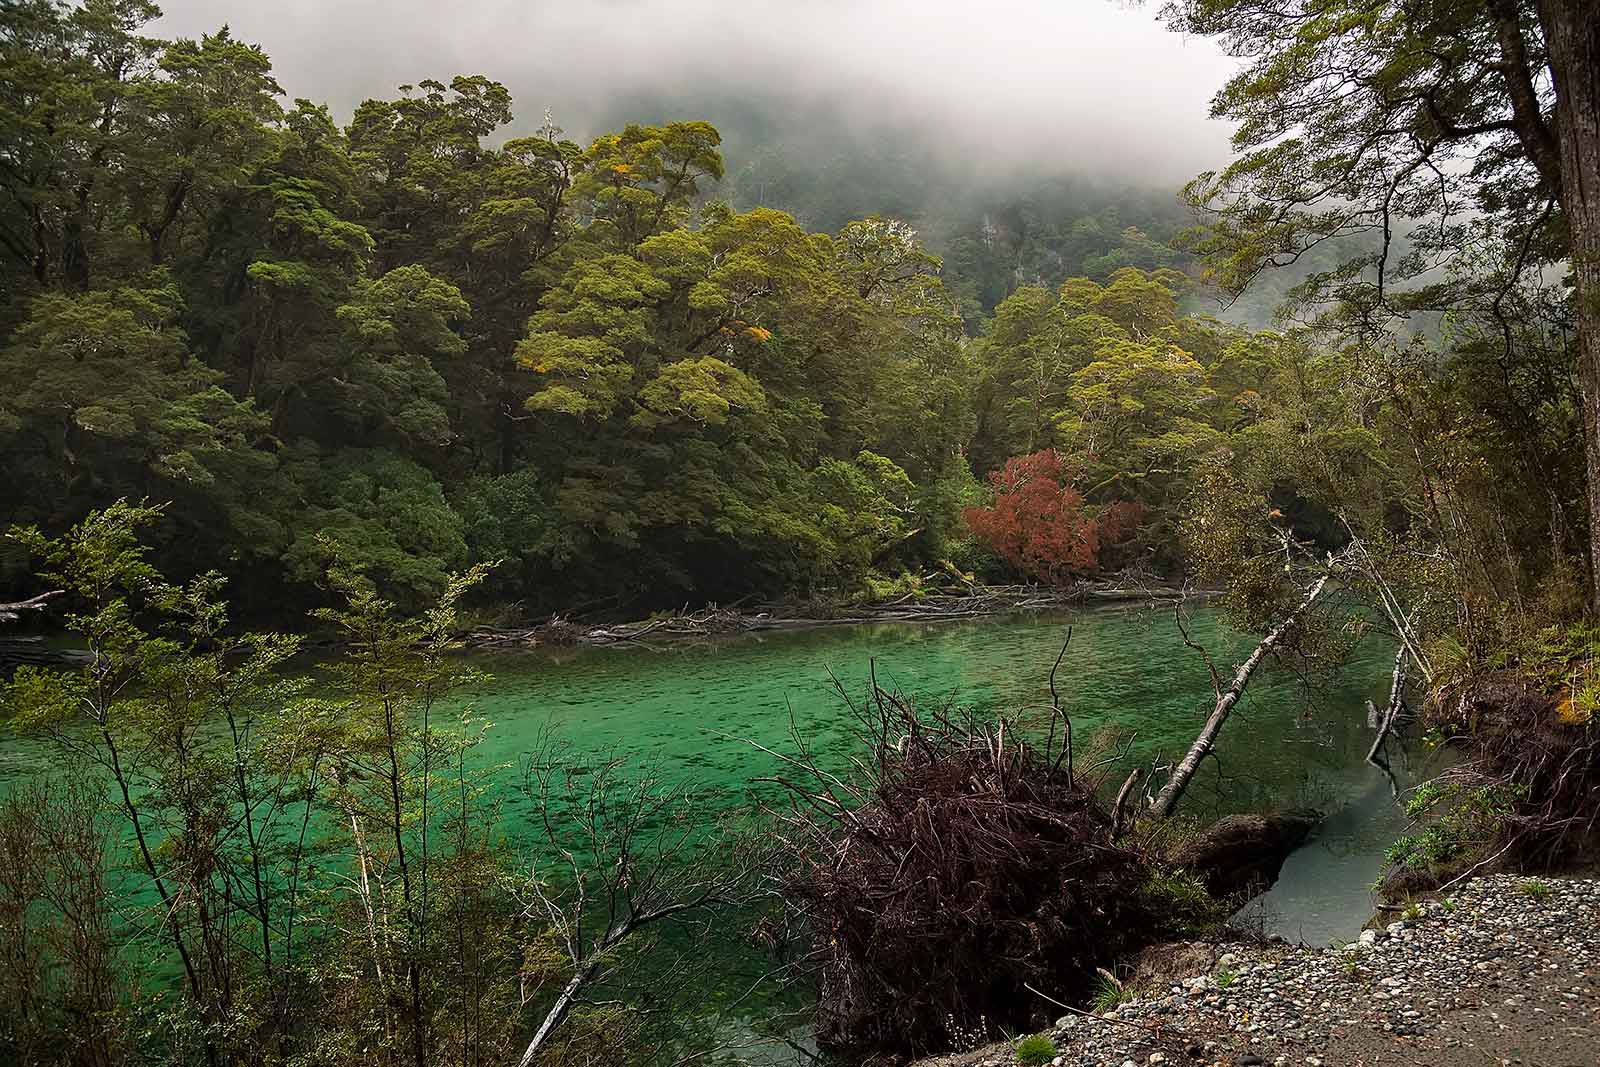 milford-track-day-1-clinton-river-landscape-new-zealand